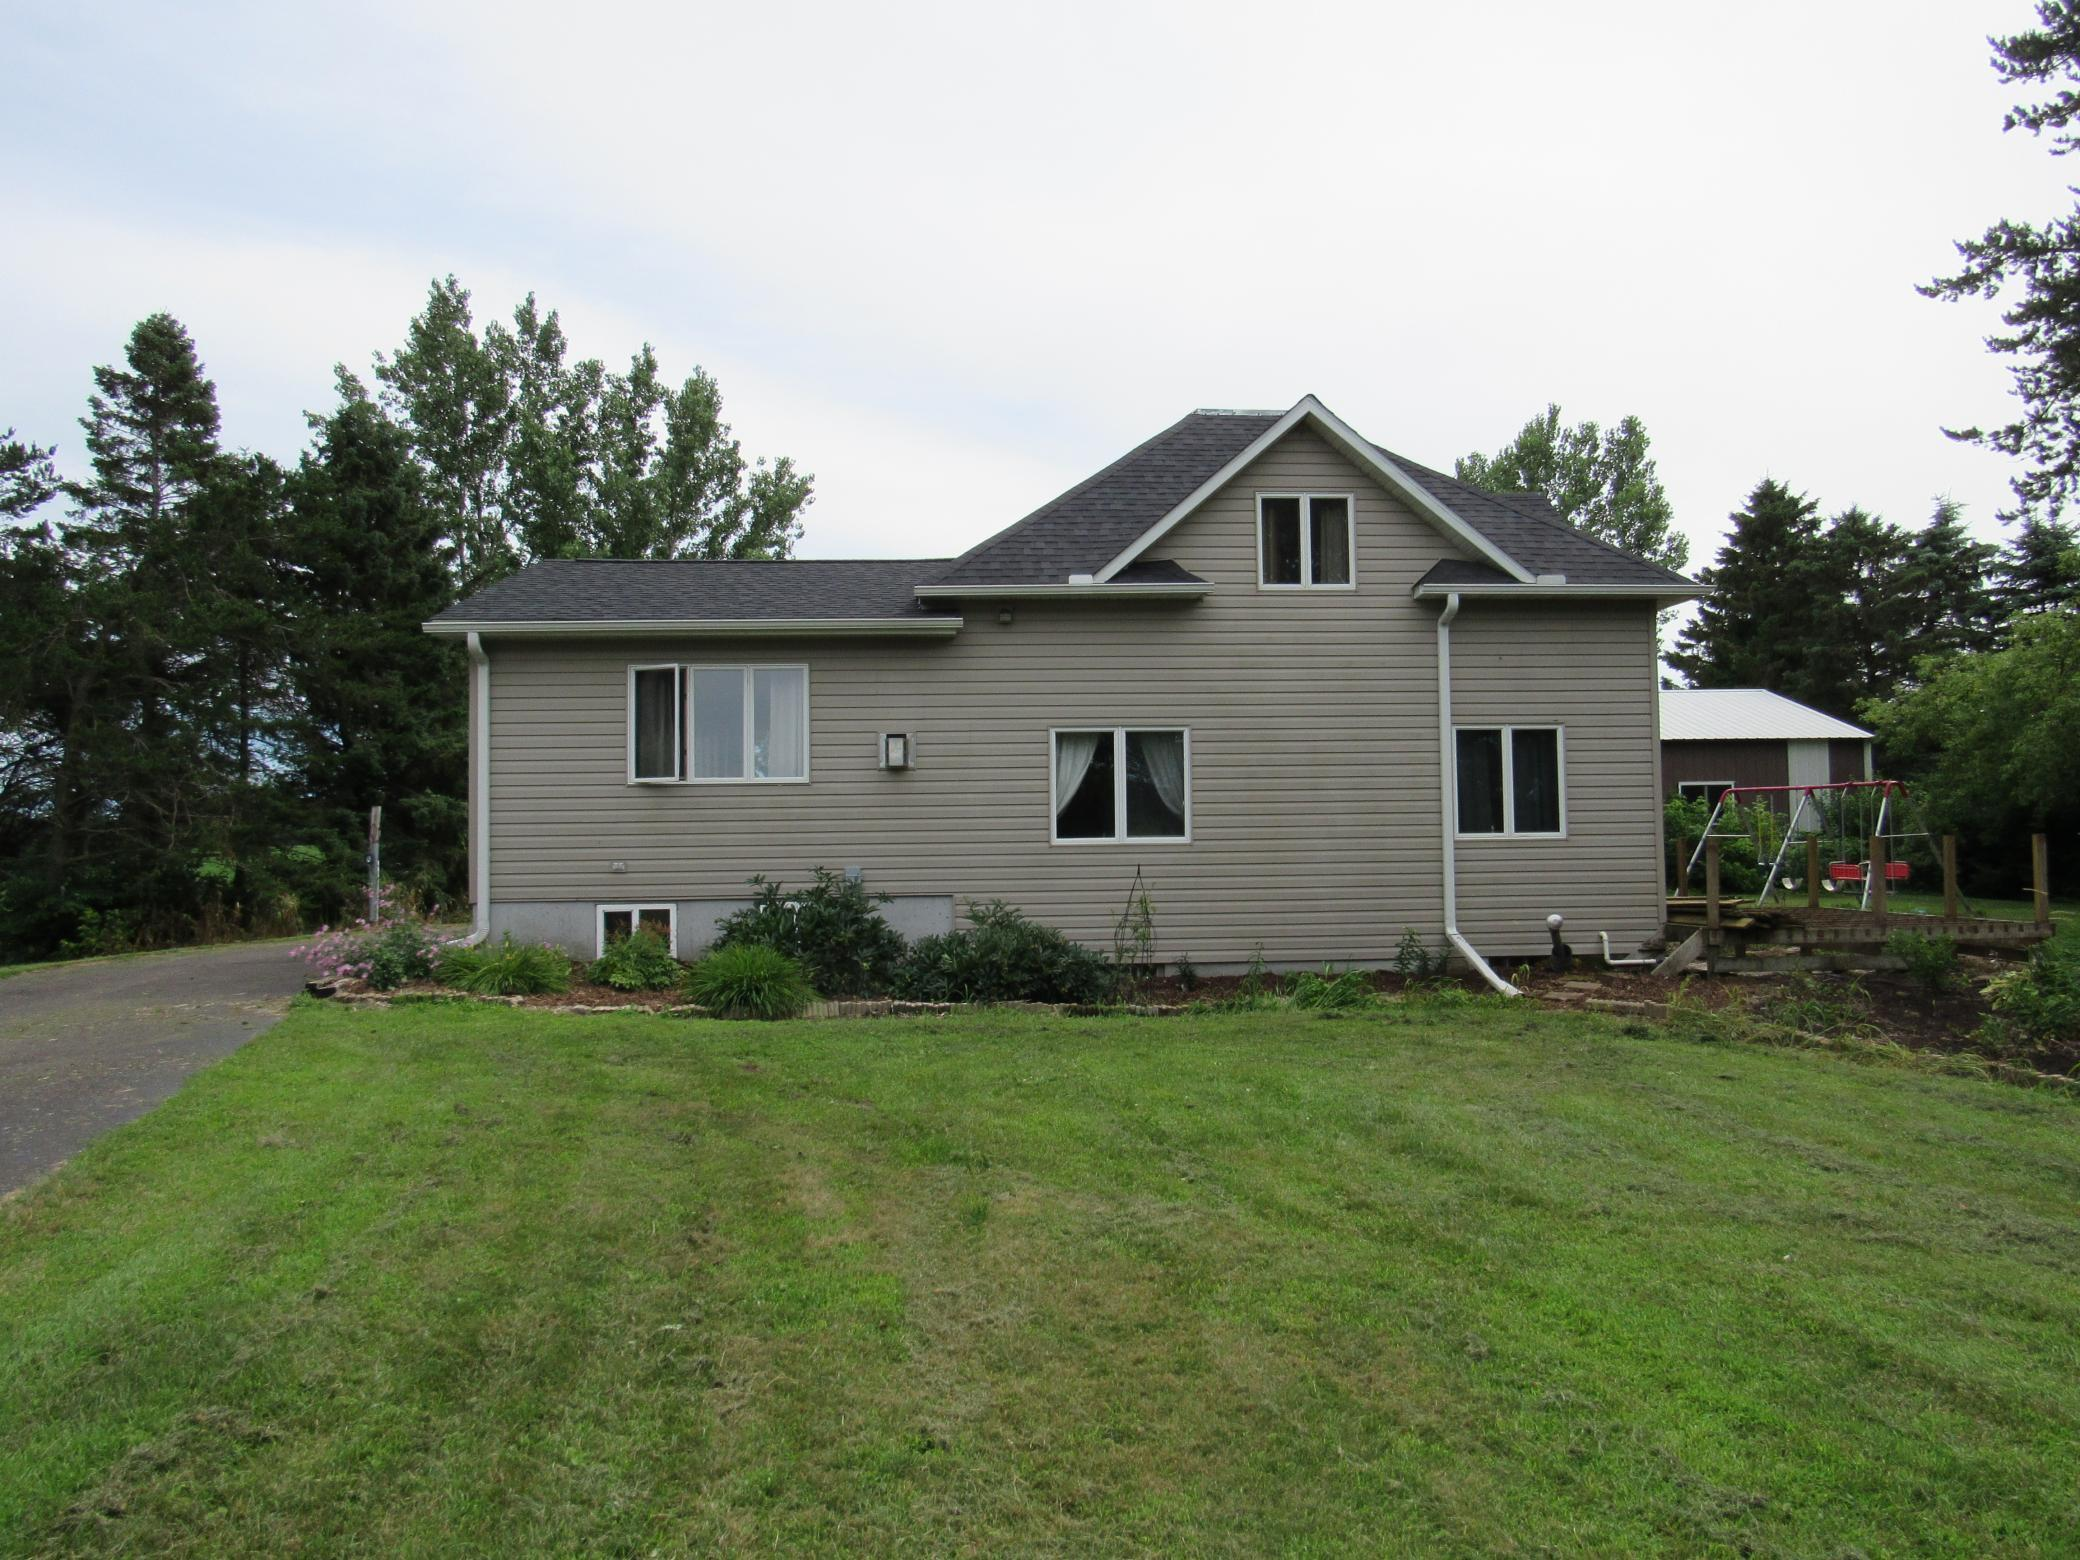 294 10th Property Photo - Clear Lake, WI real estate listing